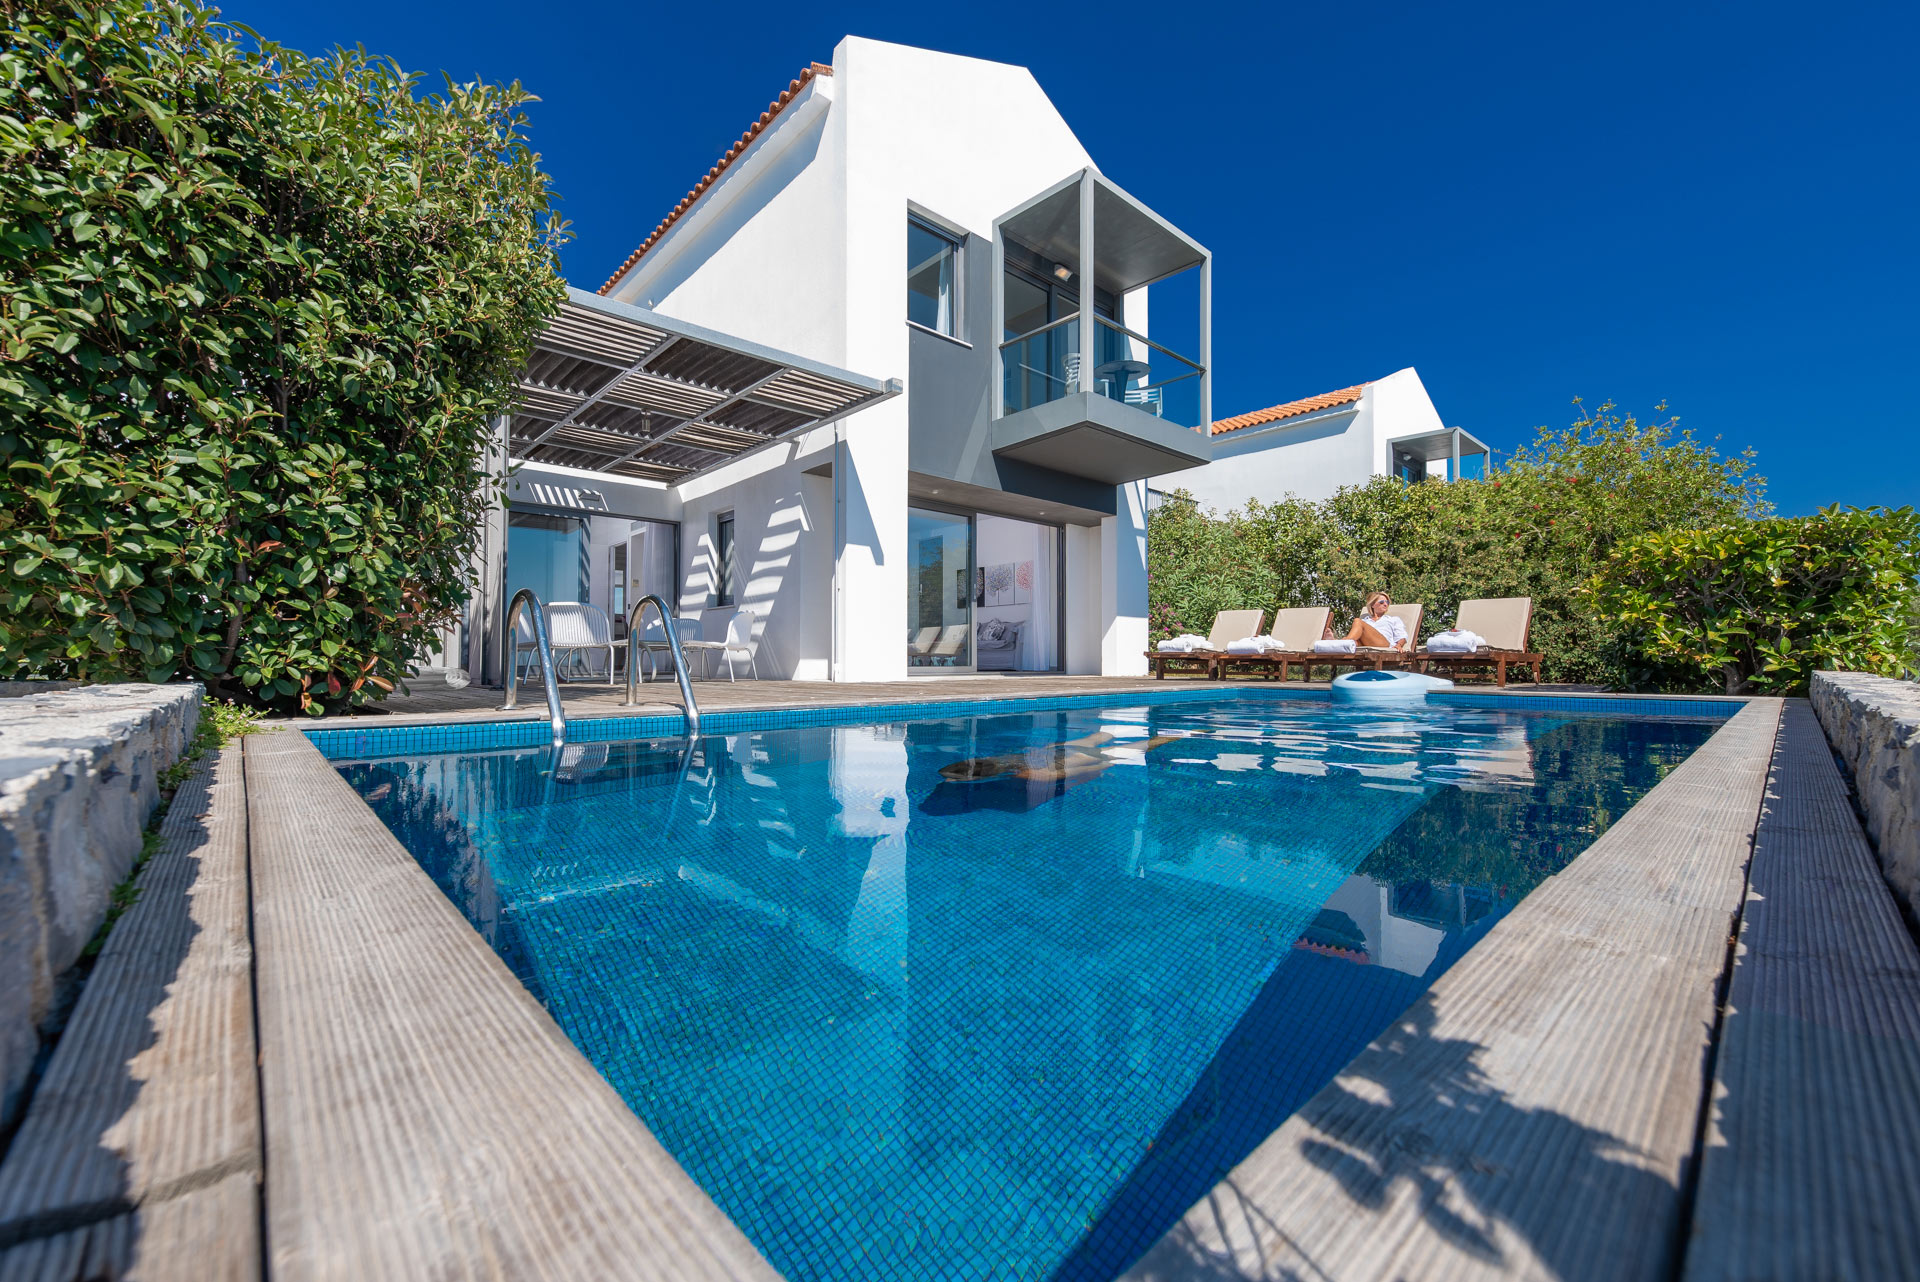 skopelos hotels adrina resort 2 beroom 2 level pool villa 479